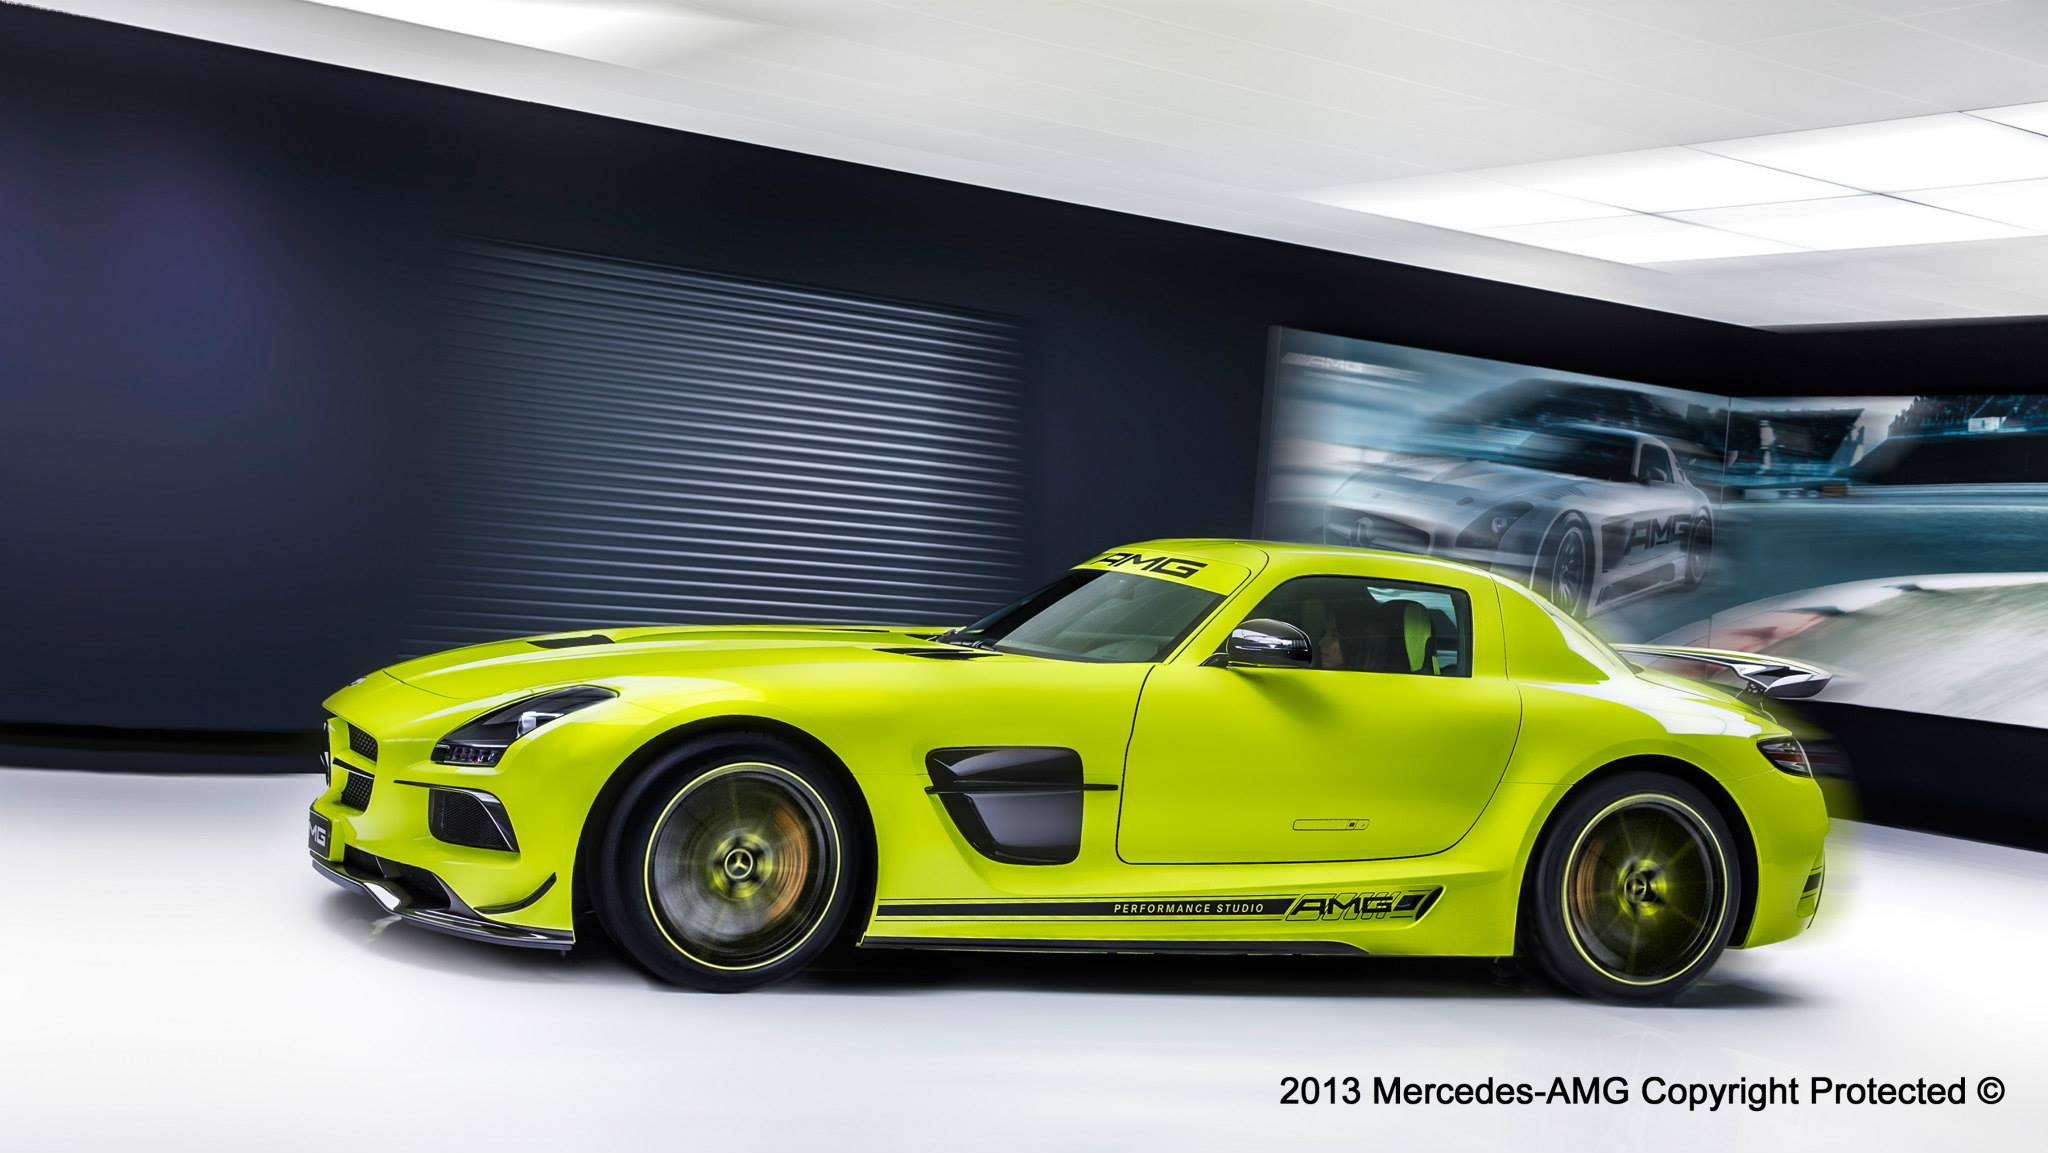 Mercedes Cars - News: Bespoke SLS AMG Black Series